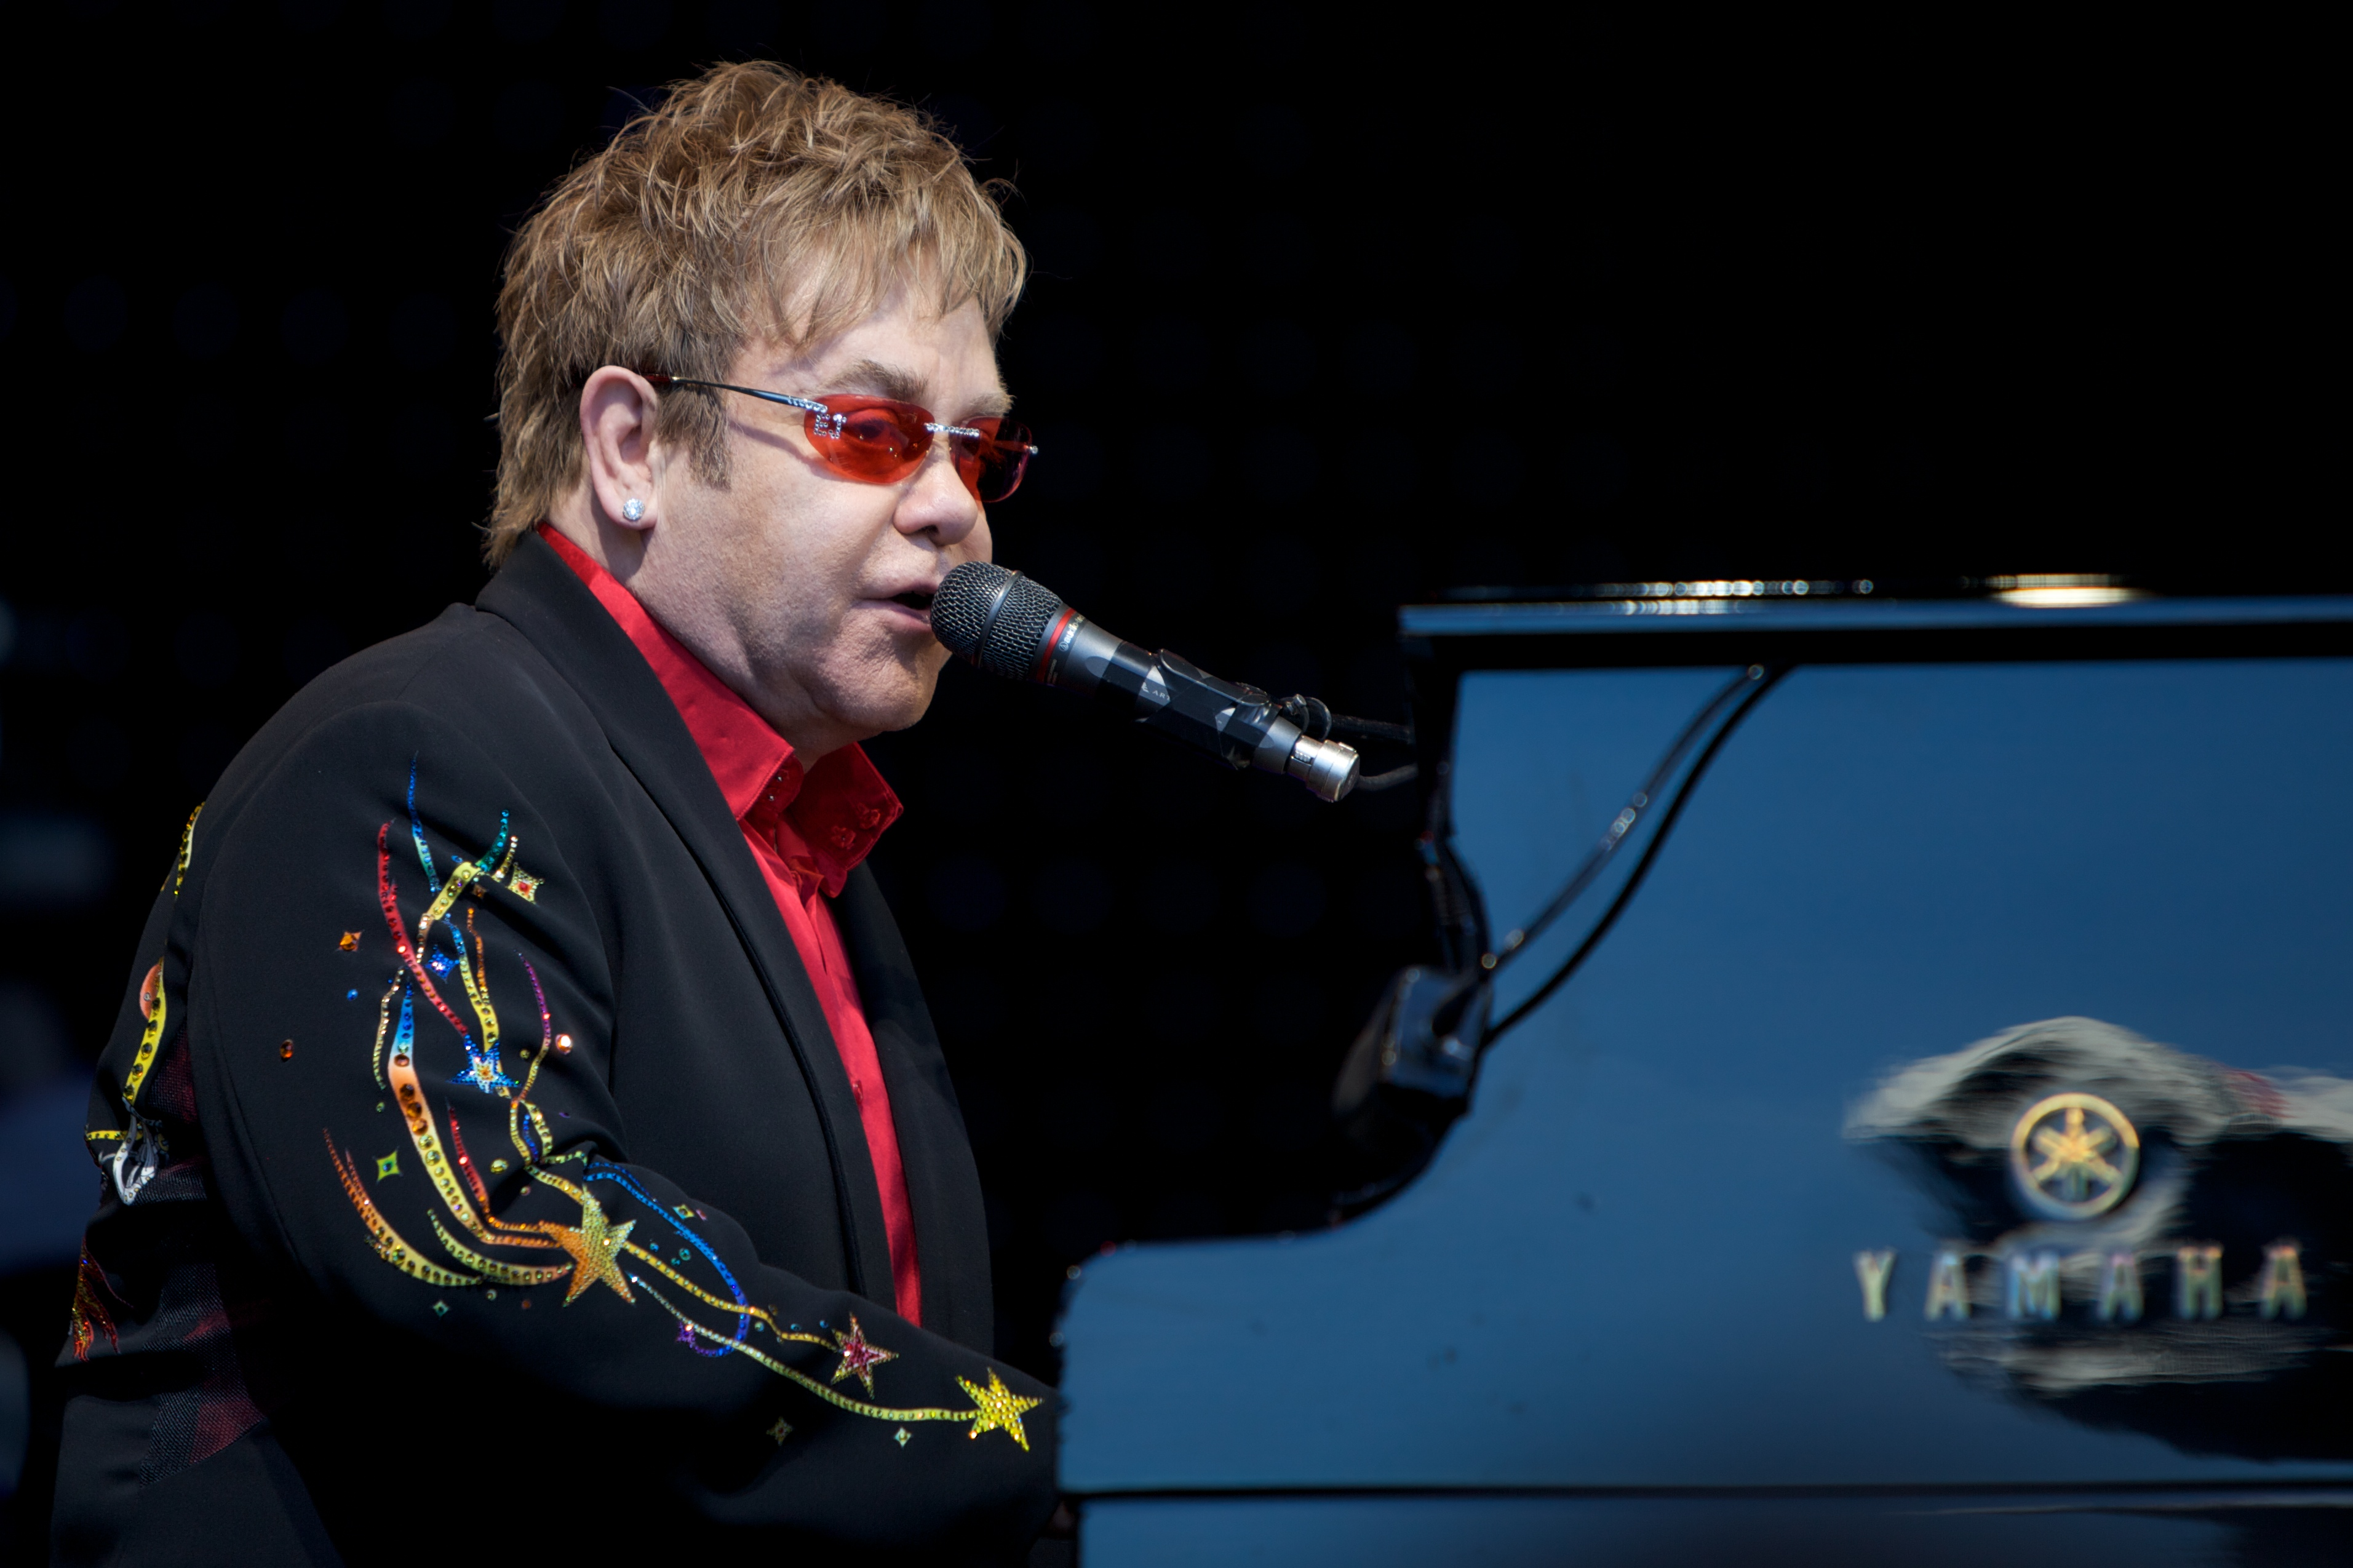 Elton John - iTunes Festival 2013 - London - Roundhouse - Hack4Life